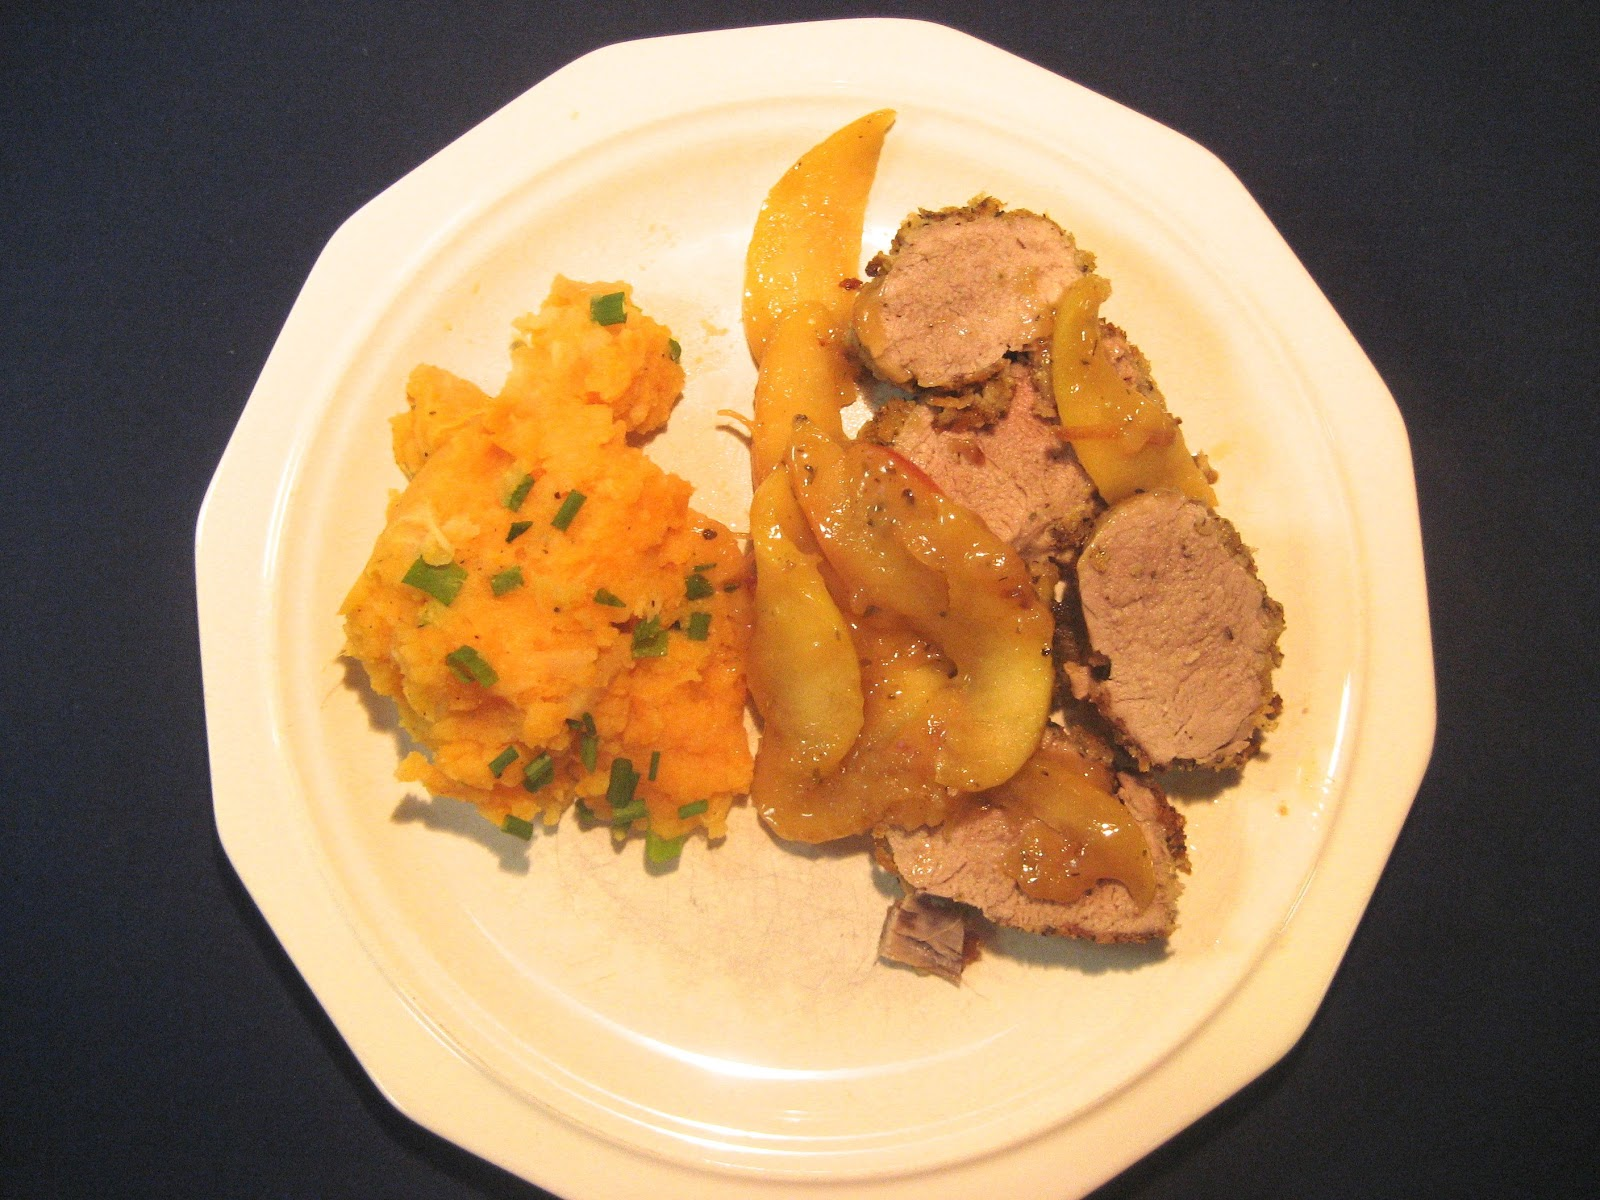 Sage-Crusted Pork Tenderloin with Apple-Thyme Compote